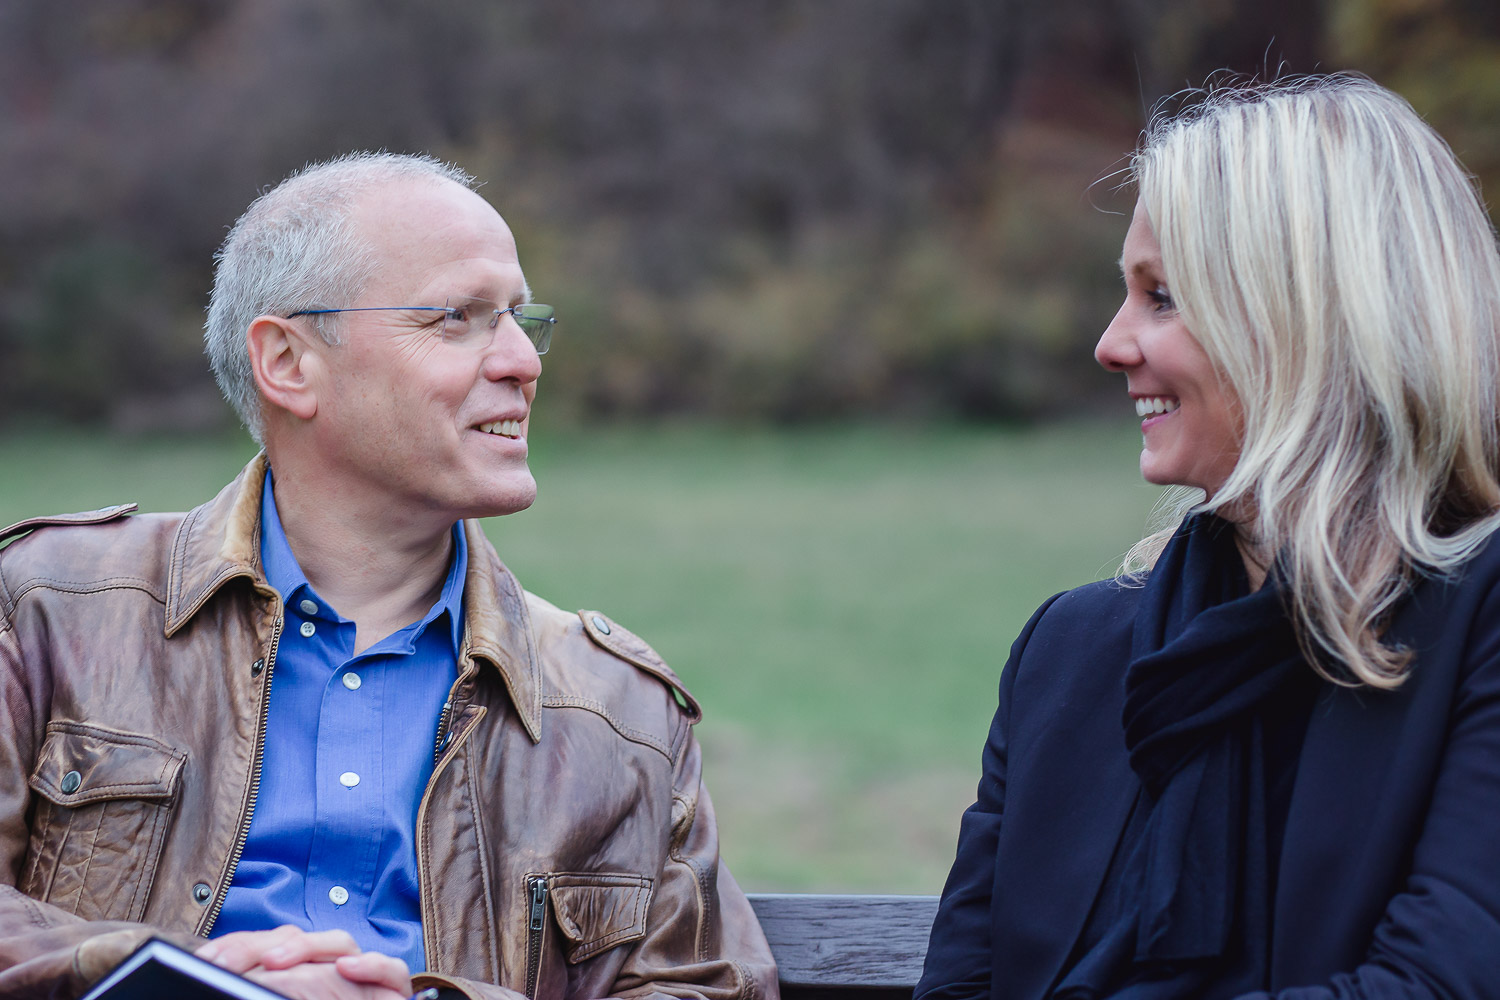 couple ,laughing, bench, outdoor, portrait